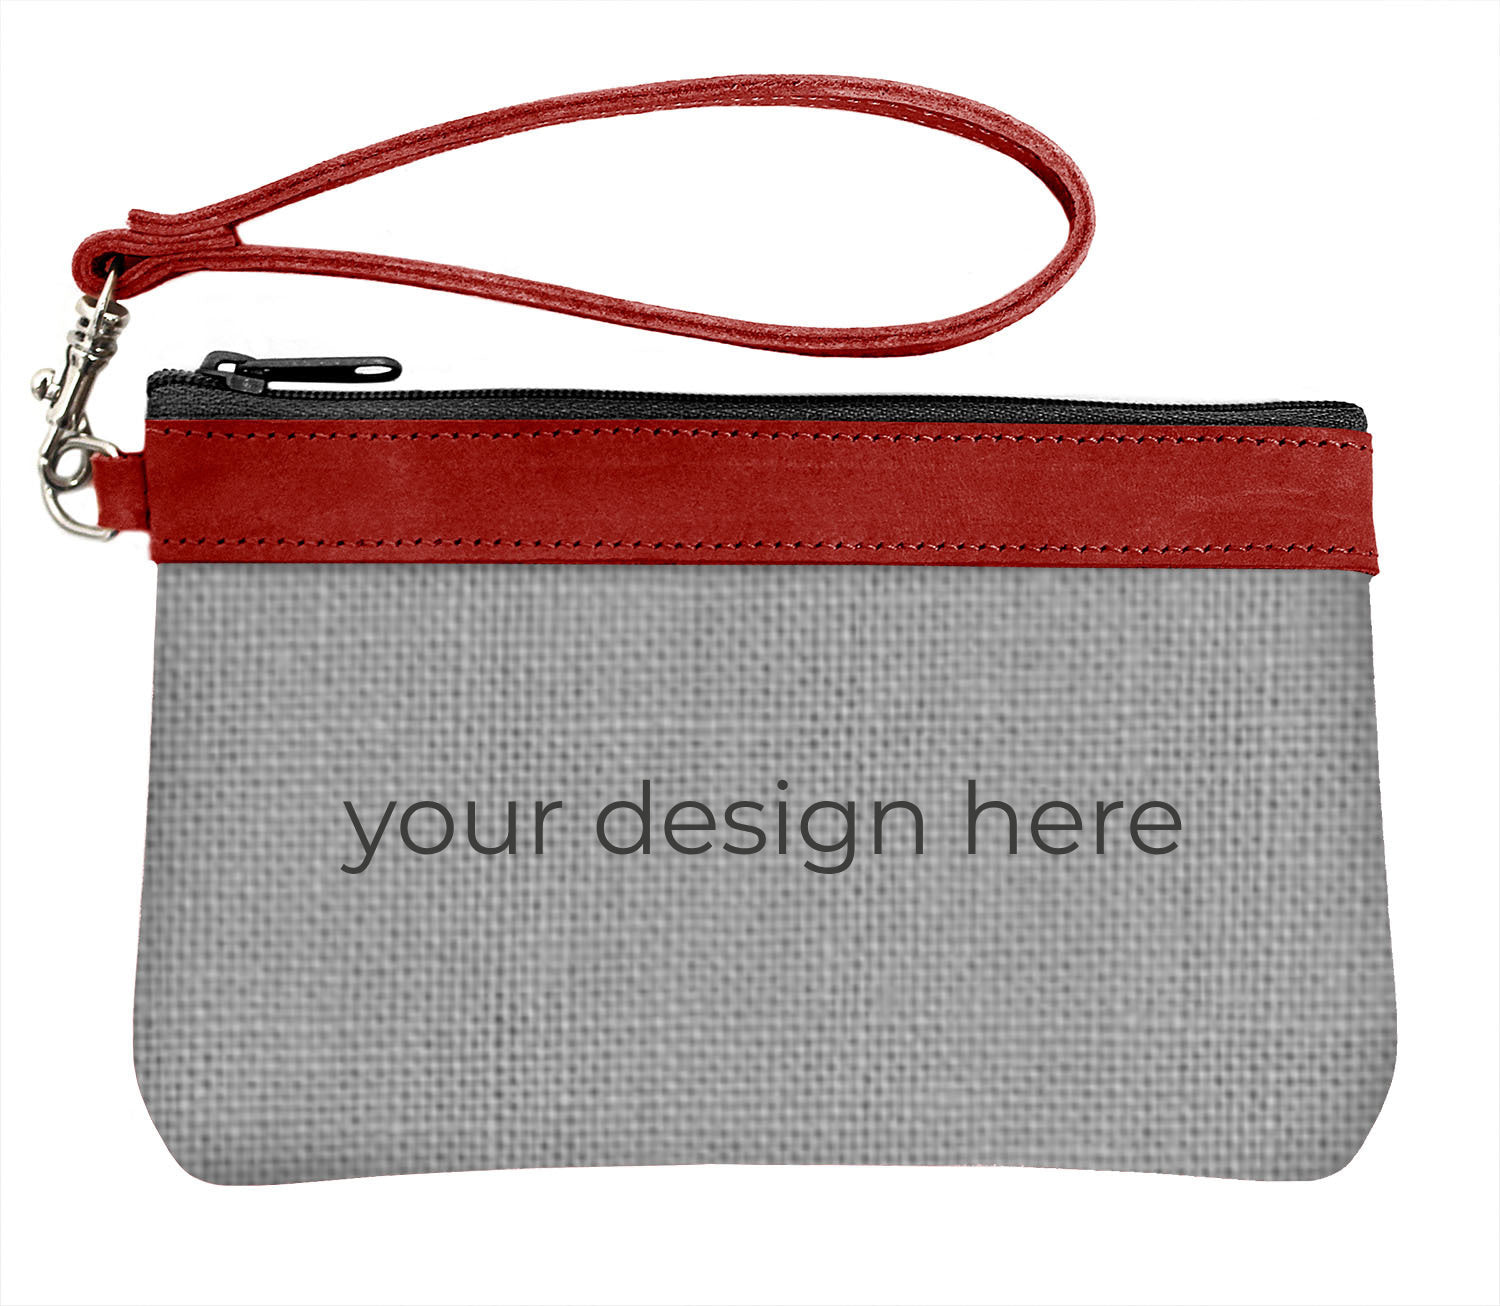 6327819155f Photo printed, Leather Handbags, Wallets, & Gifts - Snaptotes